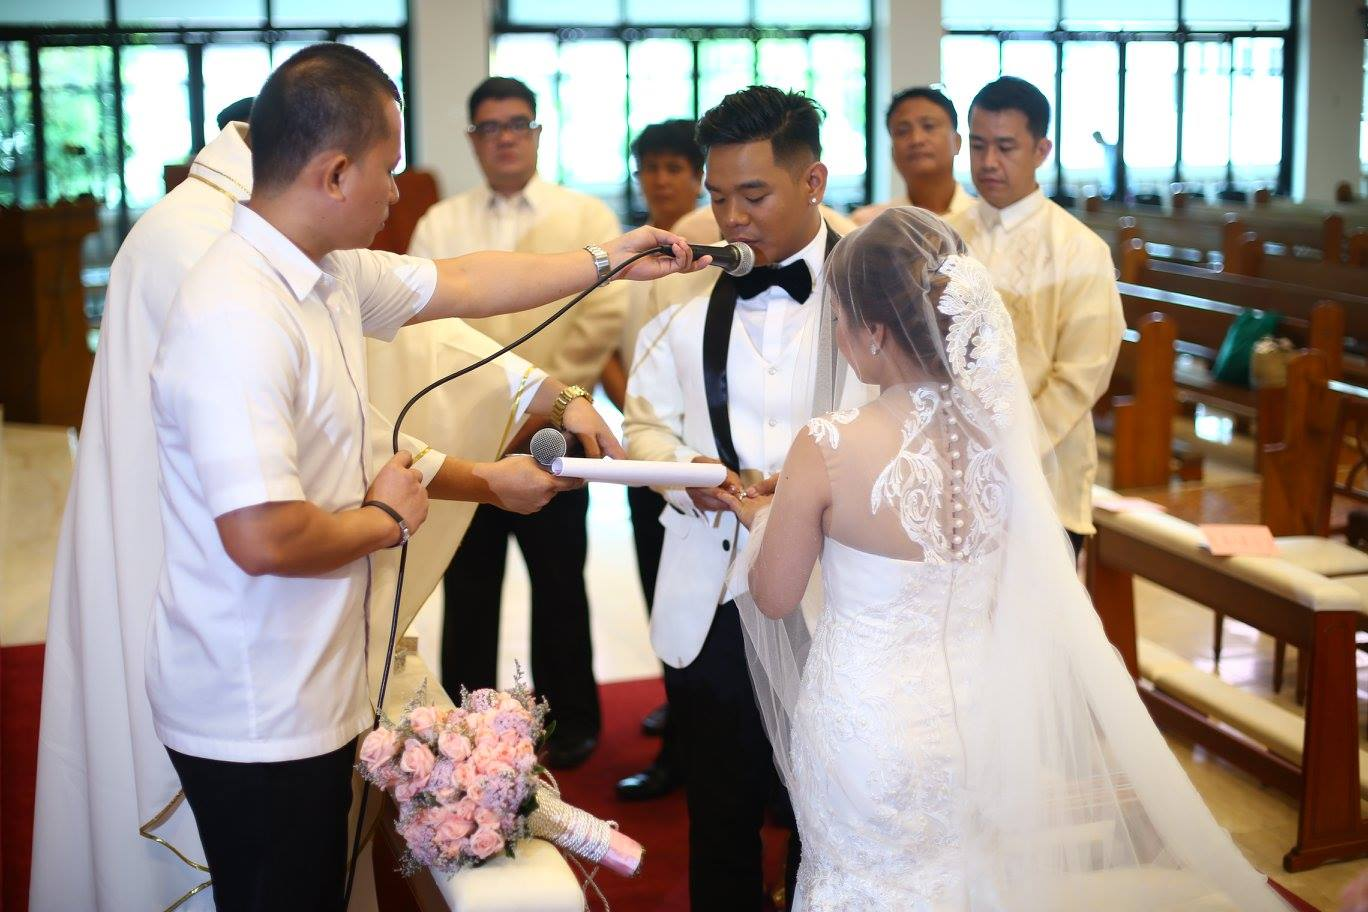 Marriage christ the king parish church greenmeadows for Civil wedding dress philippines